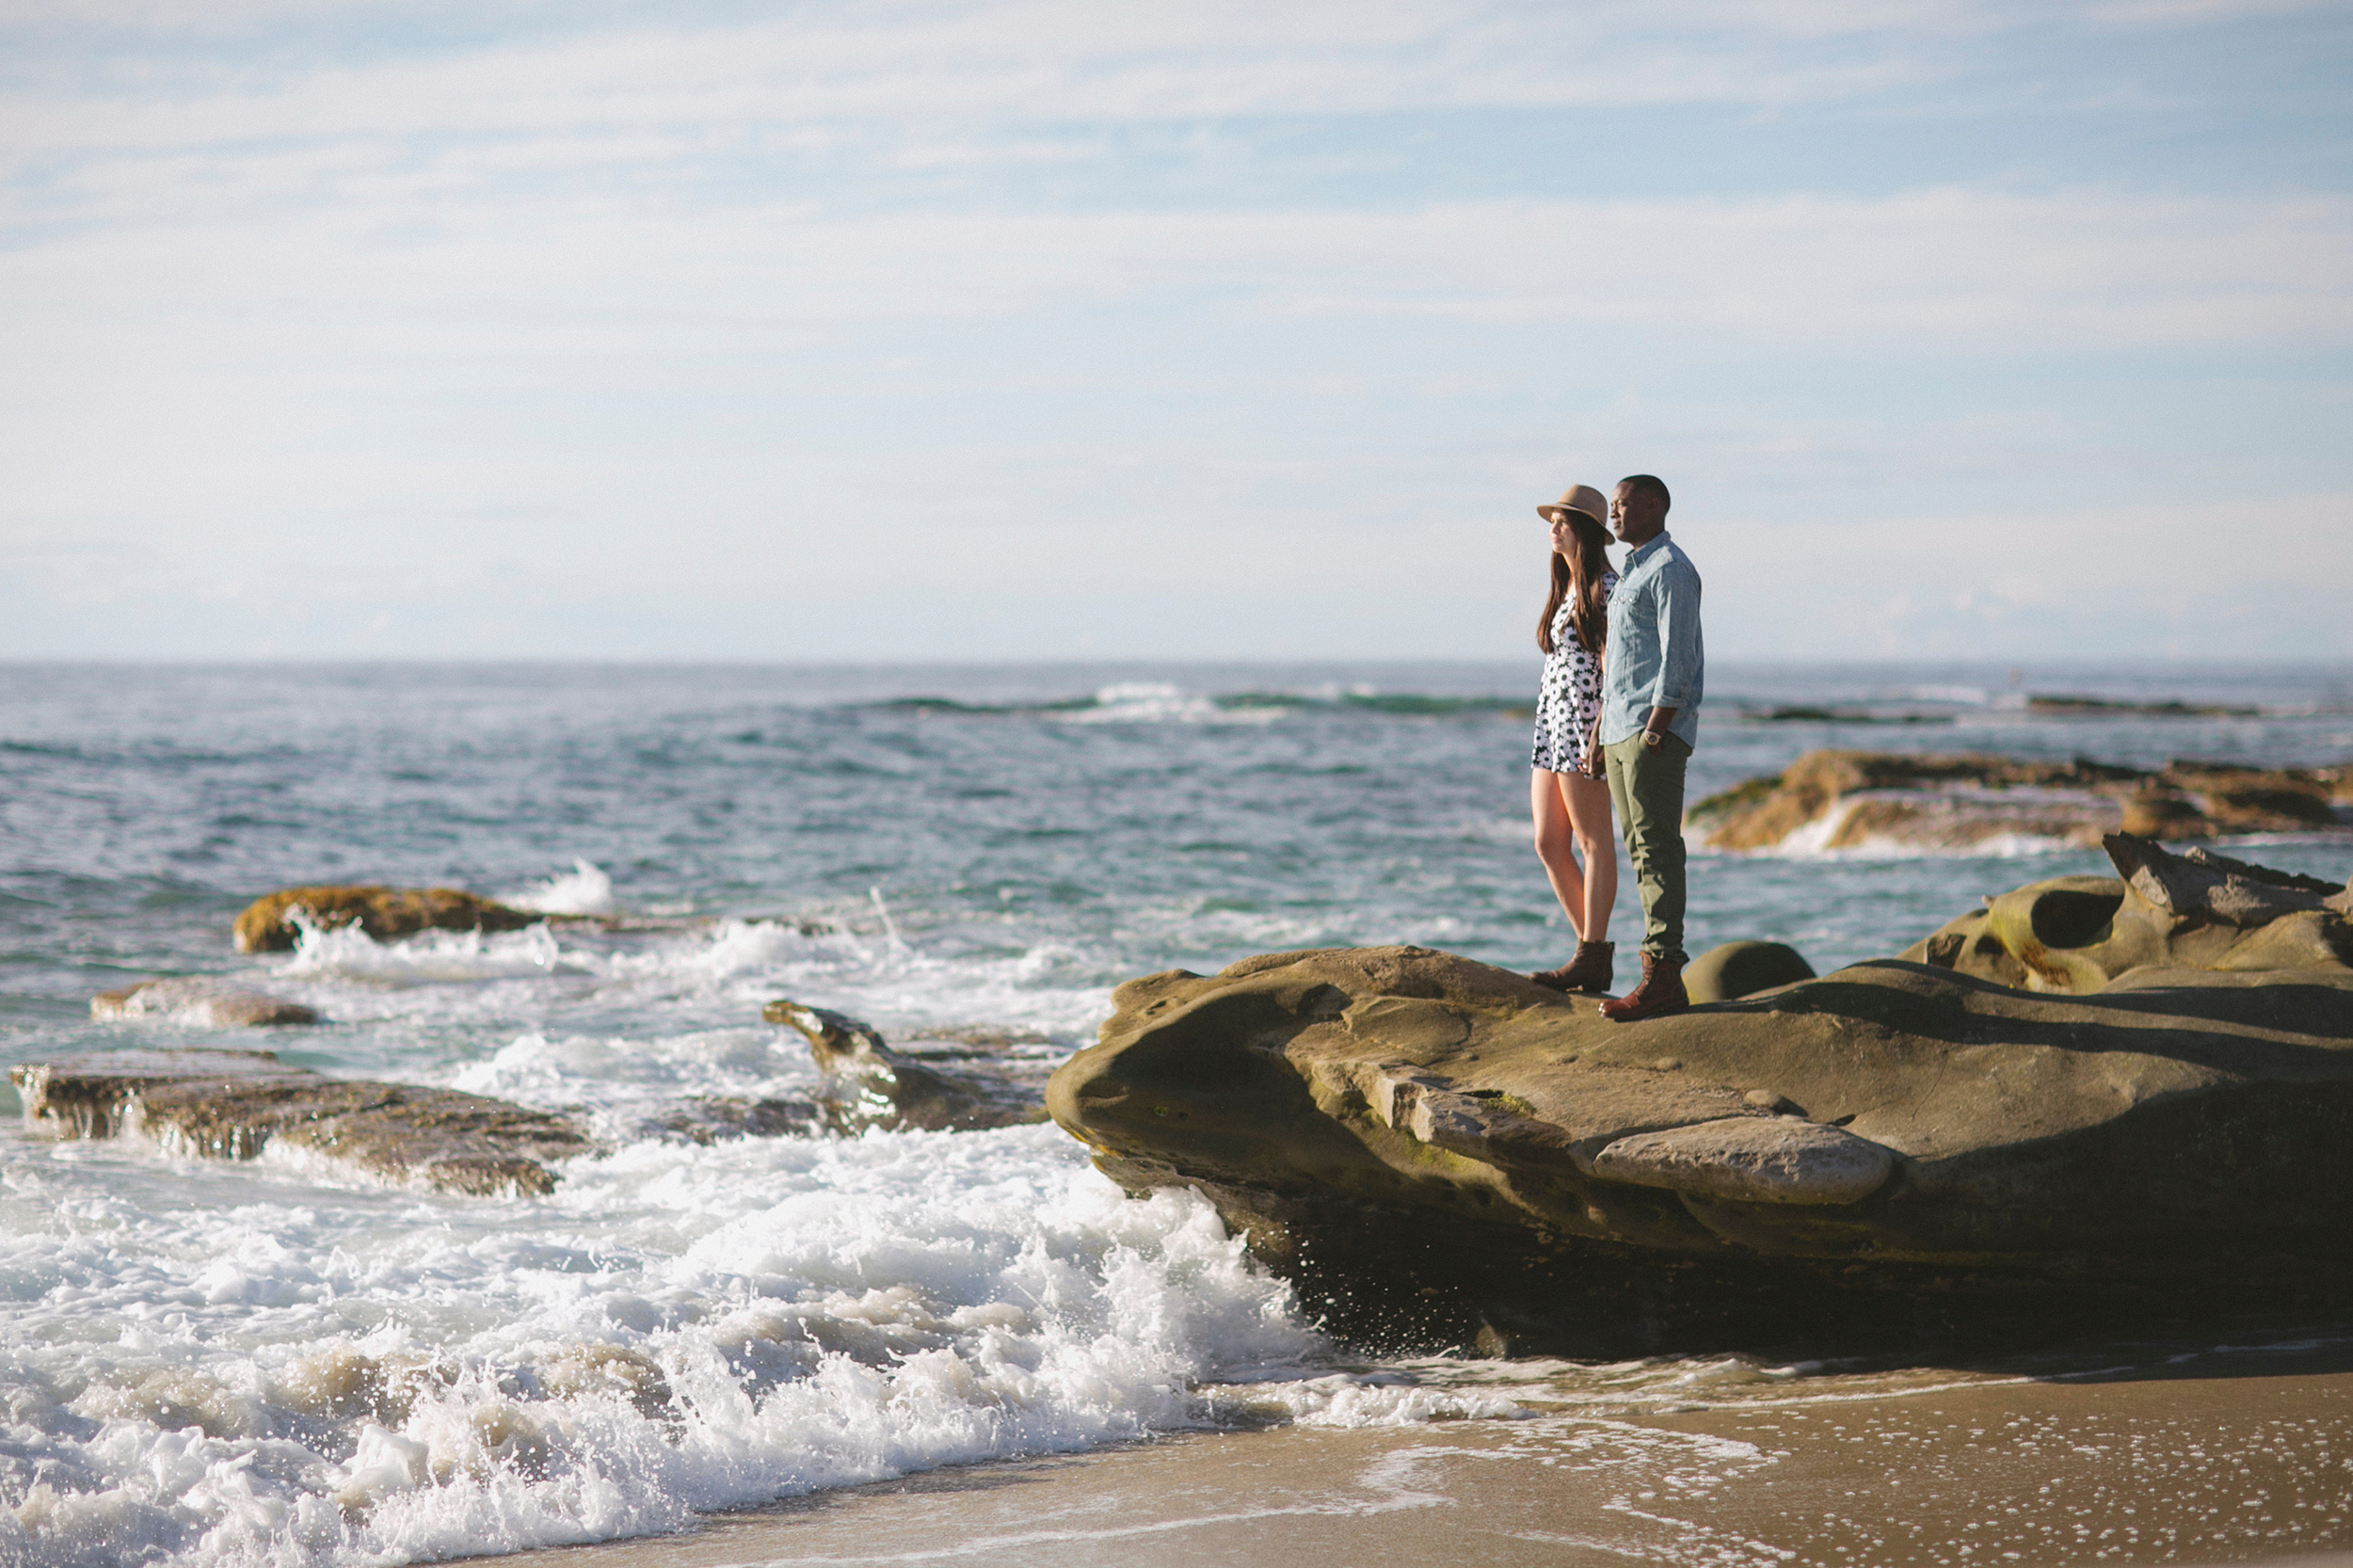 Colby-and-Jess-Adventure-Engagement-Photography-Torrey-Pines-La-Jolla-California56.jpg